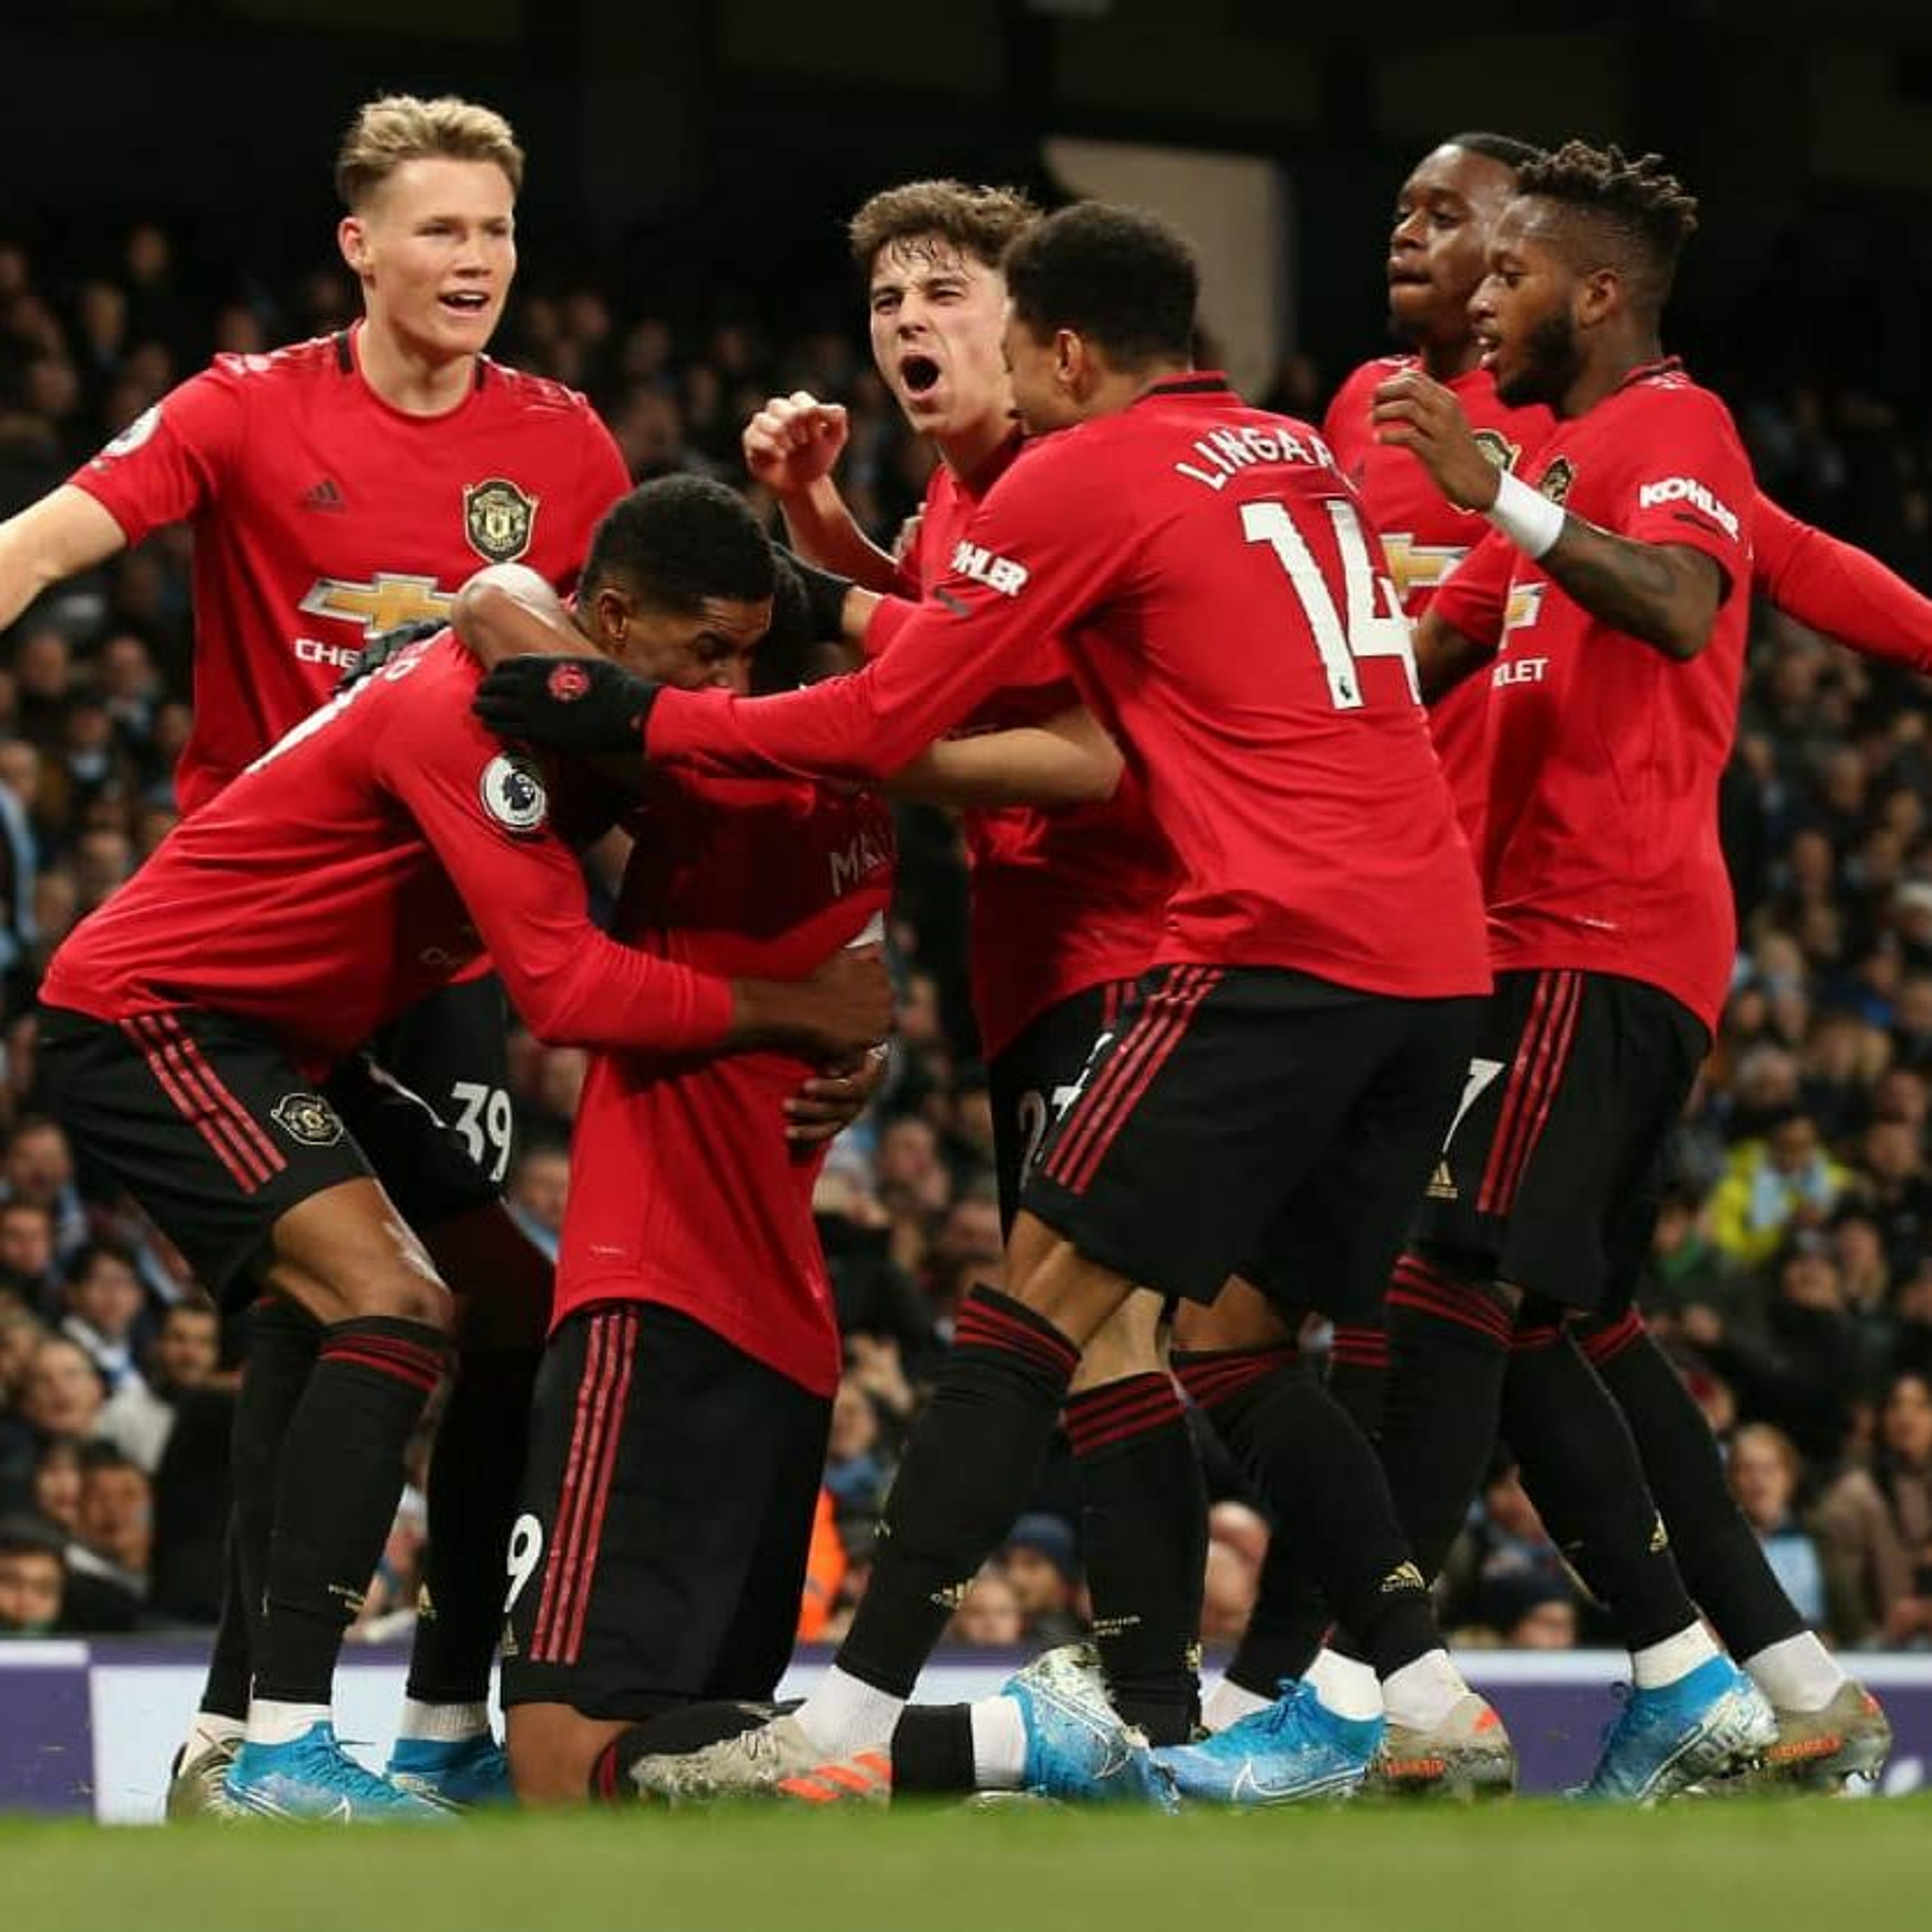 Episode 73: Manchester United Team Yaterede!